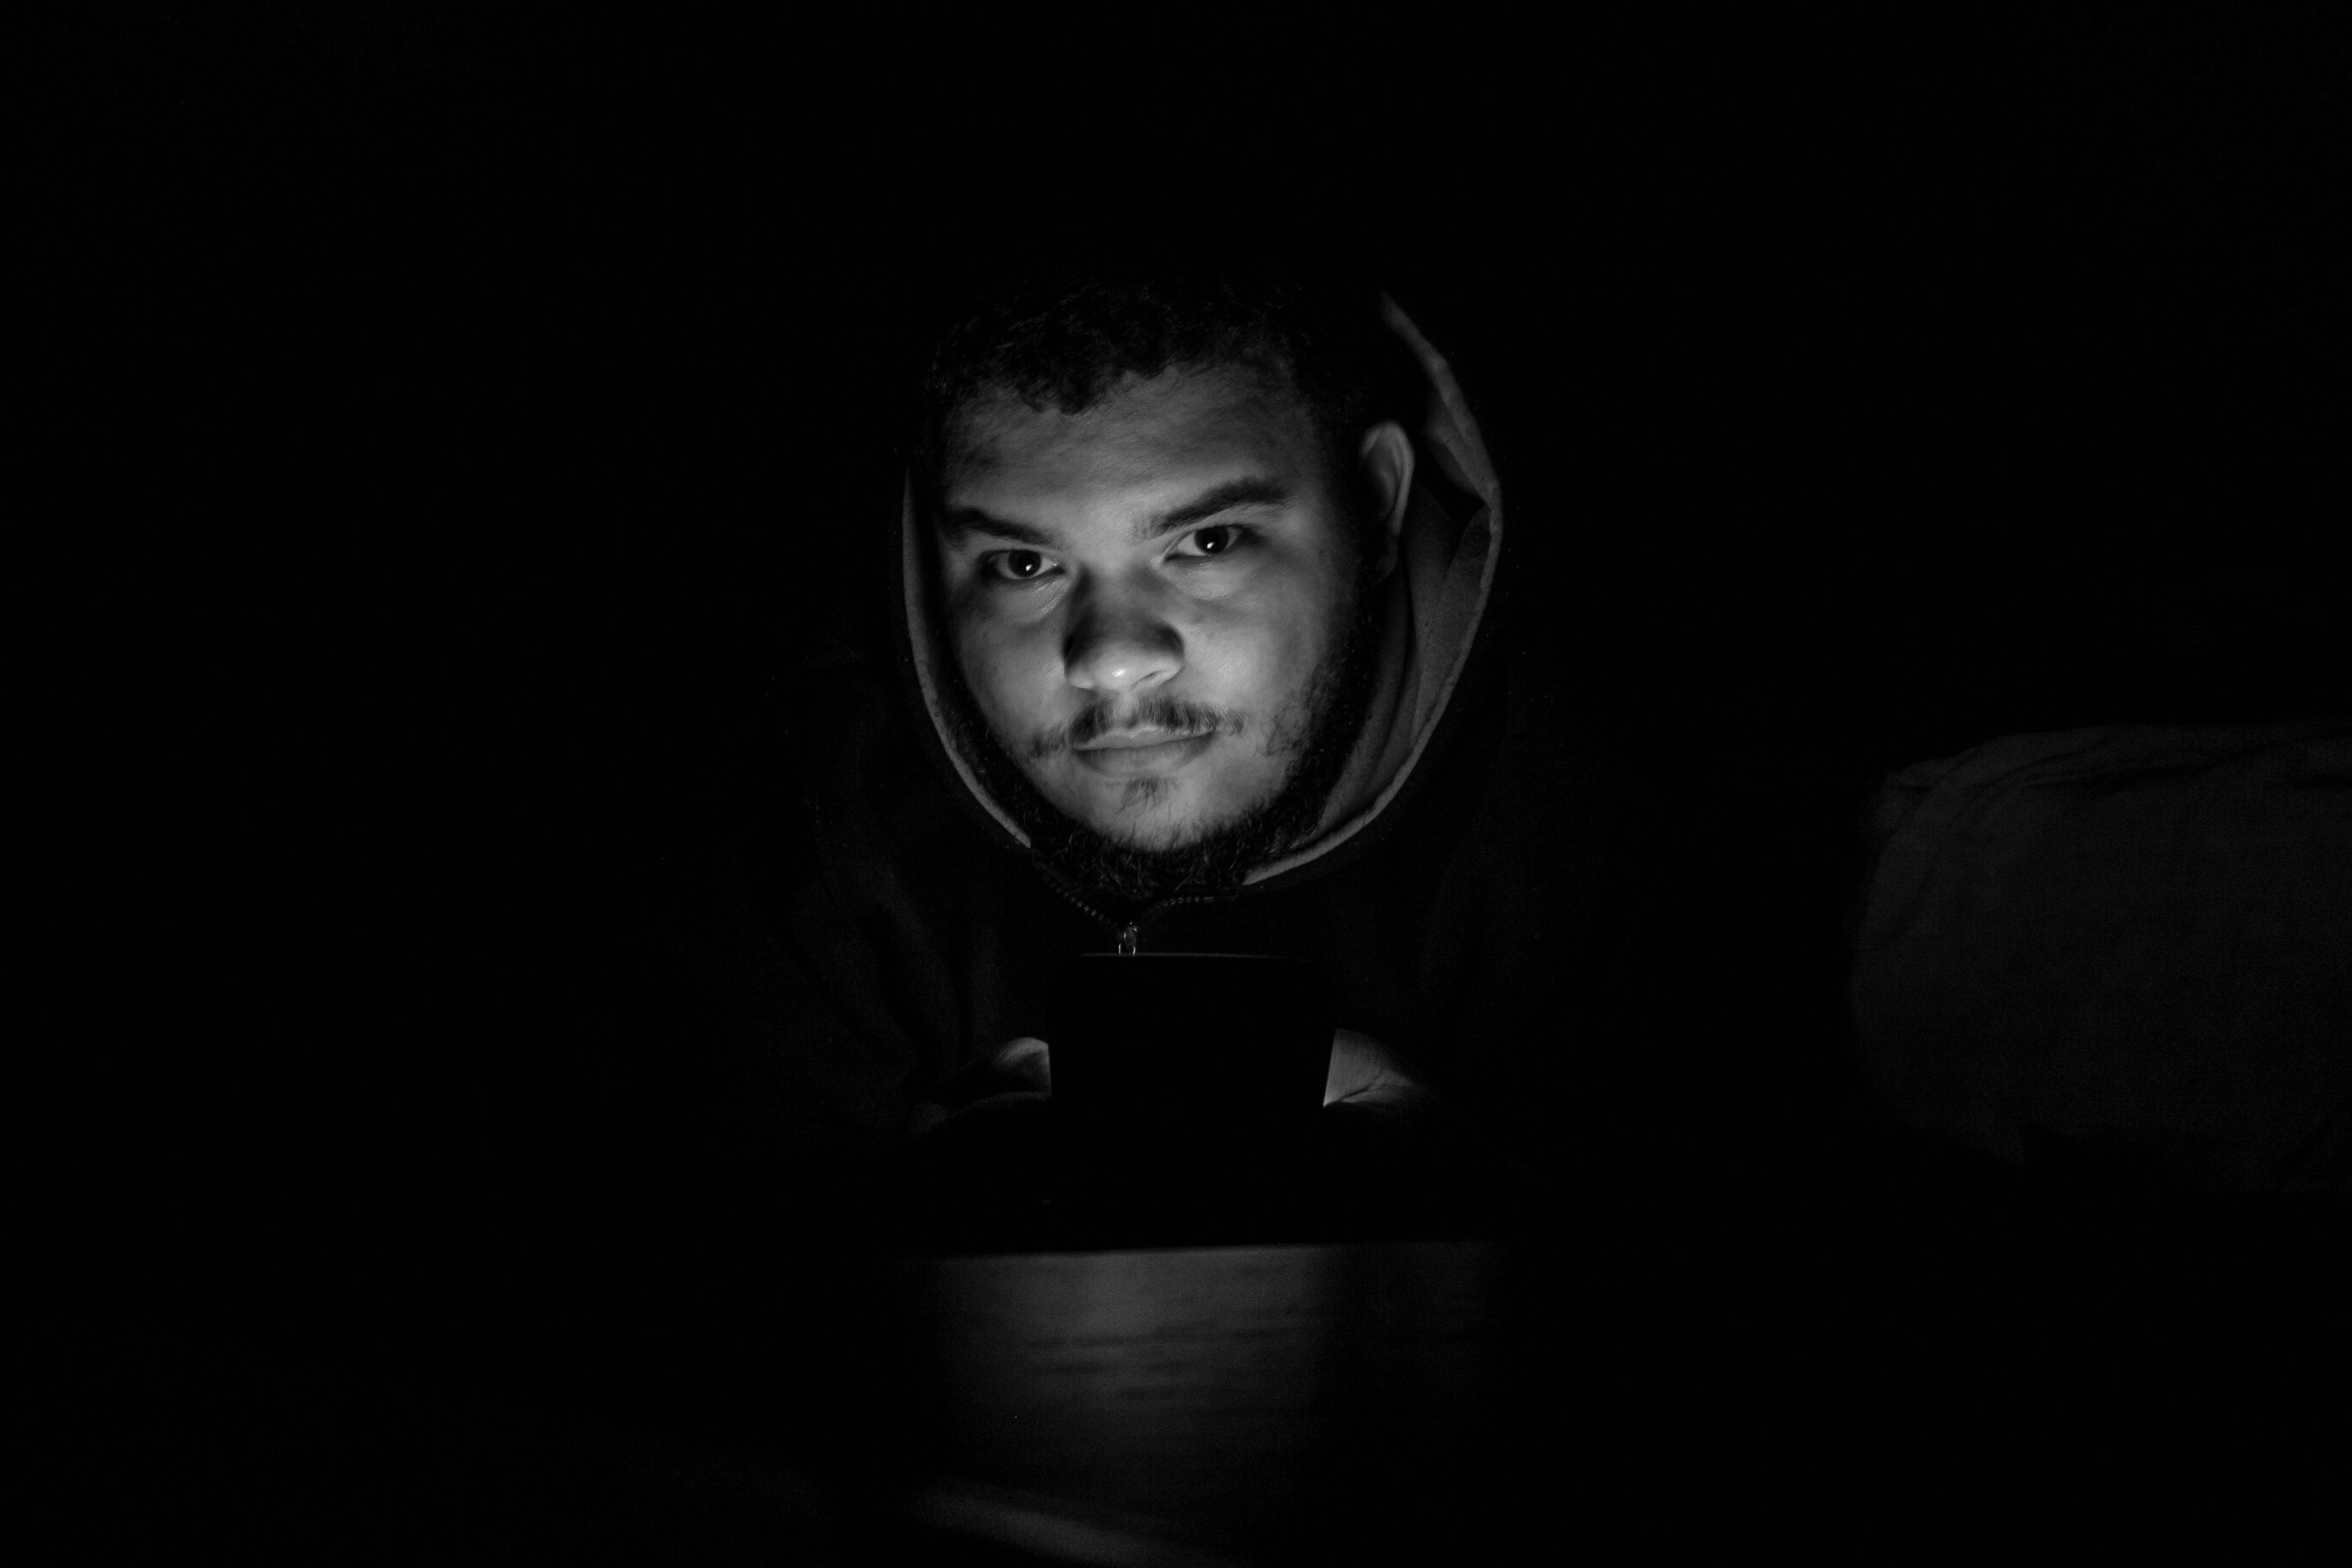 indoors, portrait, looking at camera, black background, front view, lifestyles, person, dark, copy space, young adult, studio shot, headshot, leisure activity, darkroom, home interior, casual clothing, contemplation, young men